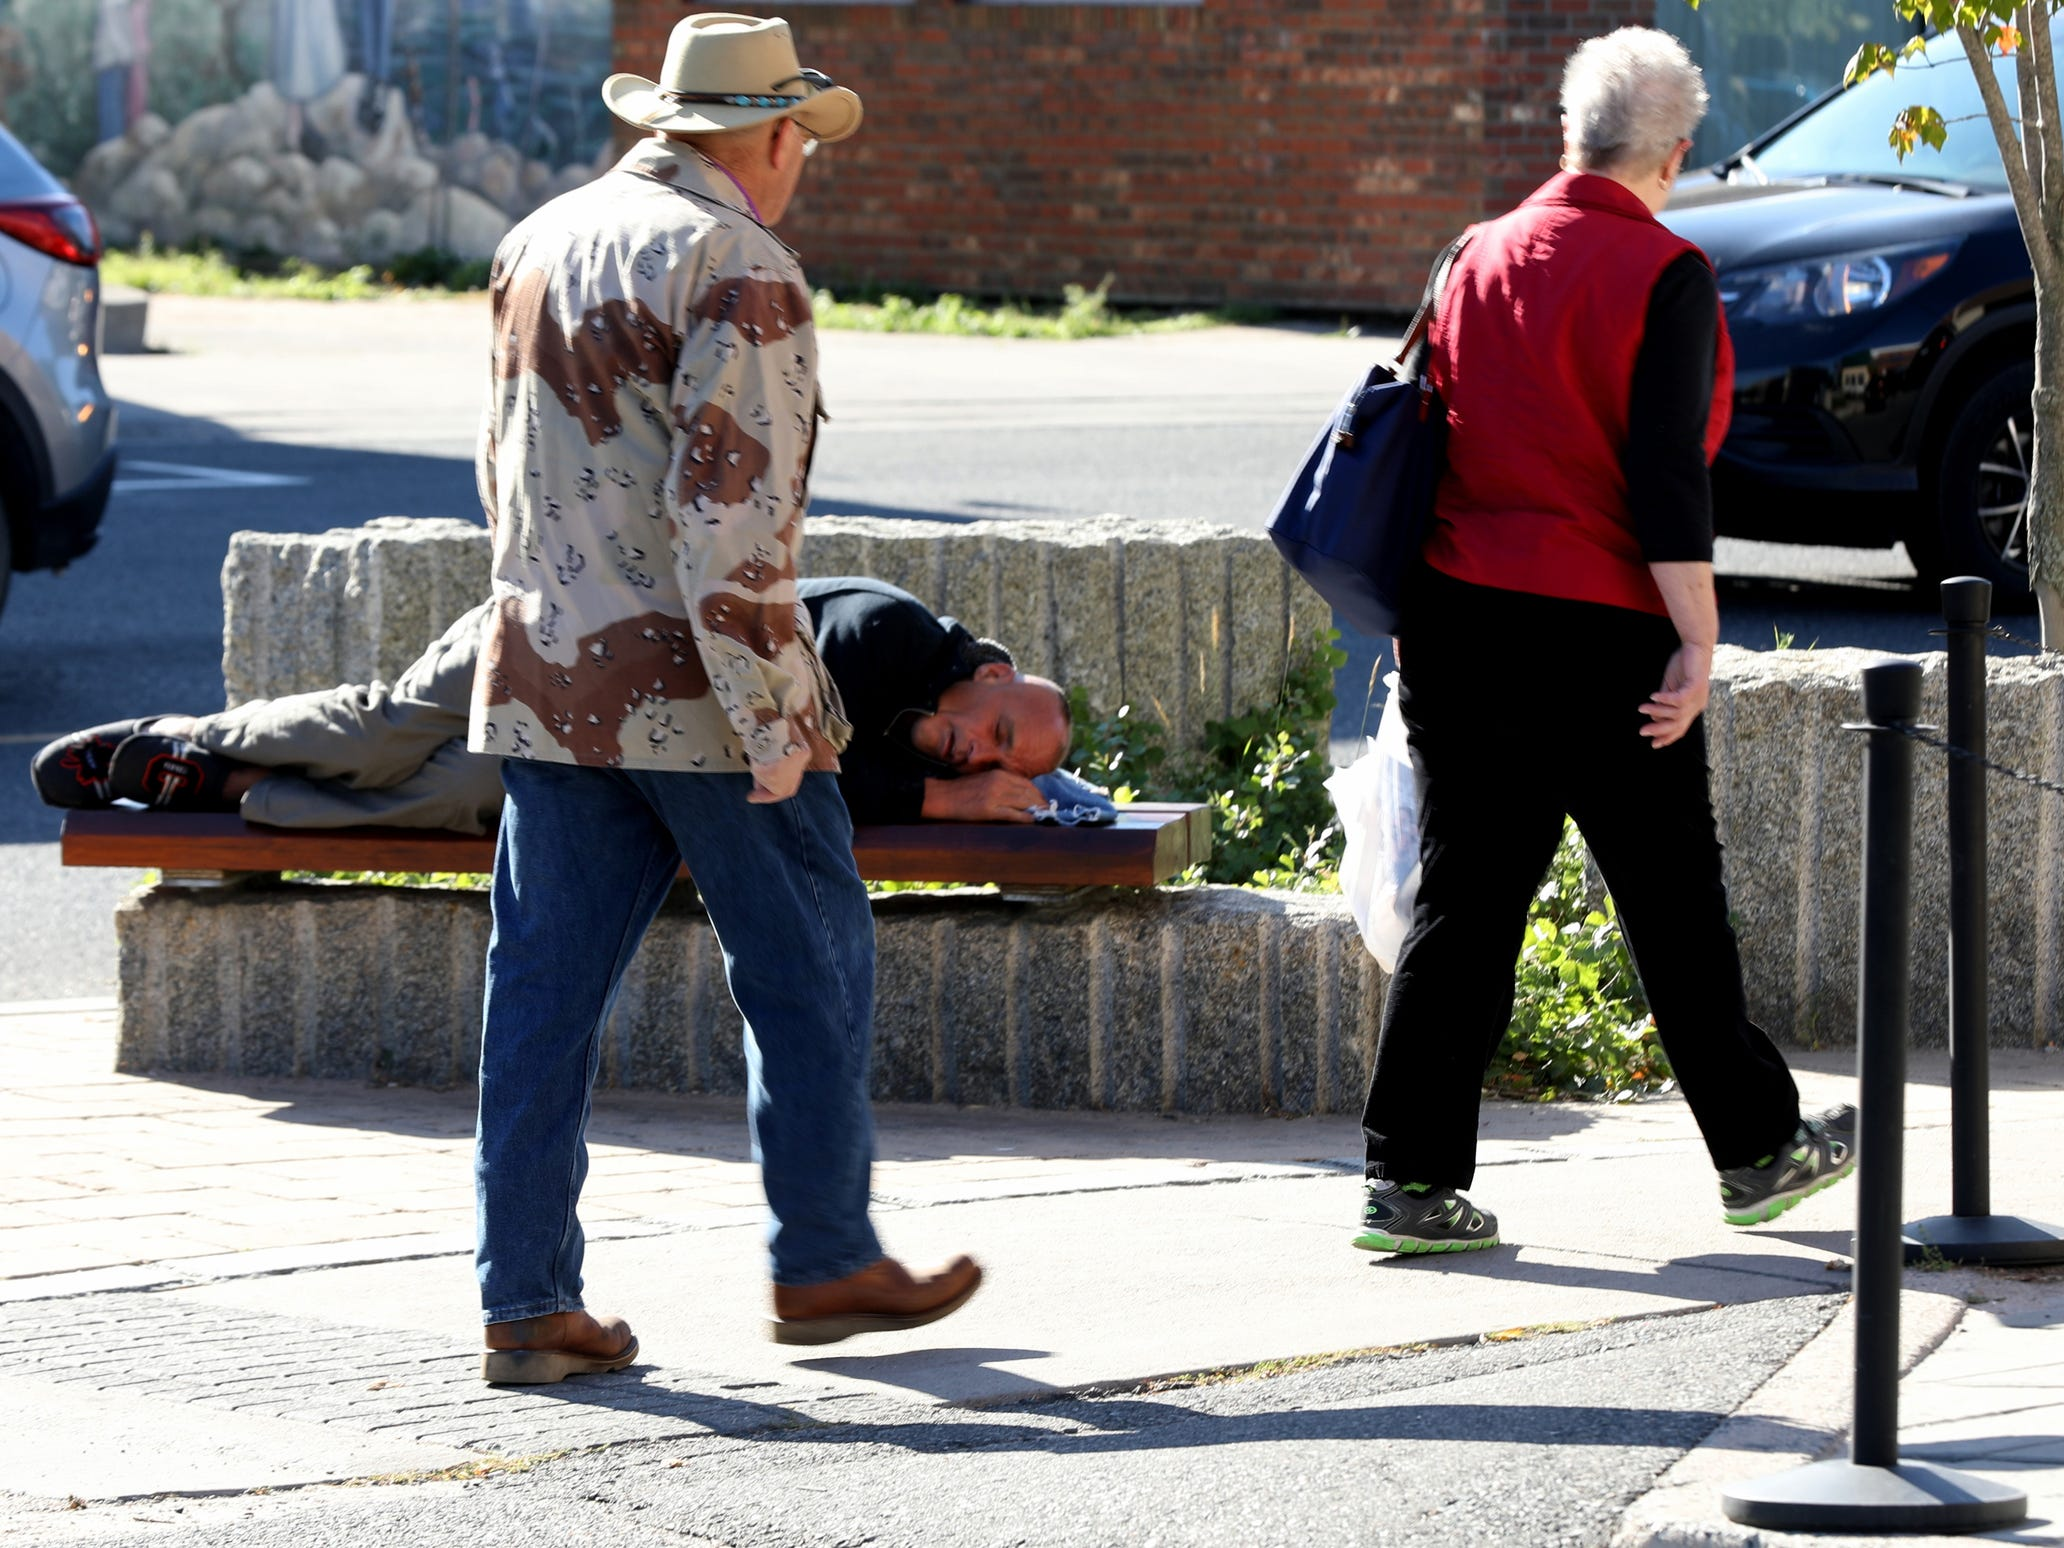 People walk by as Joe Murphy takes a nap on a wooden bench the heart of downtown Kenora, Ontario, Canada.